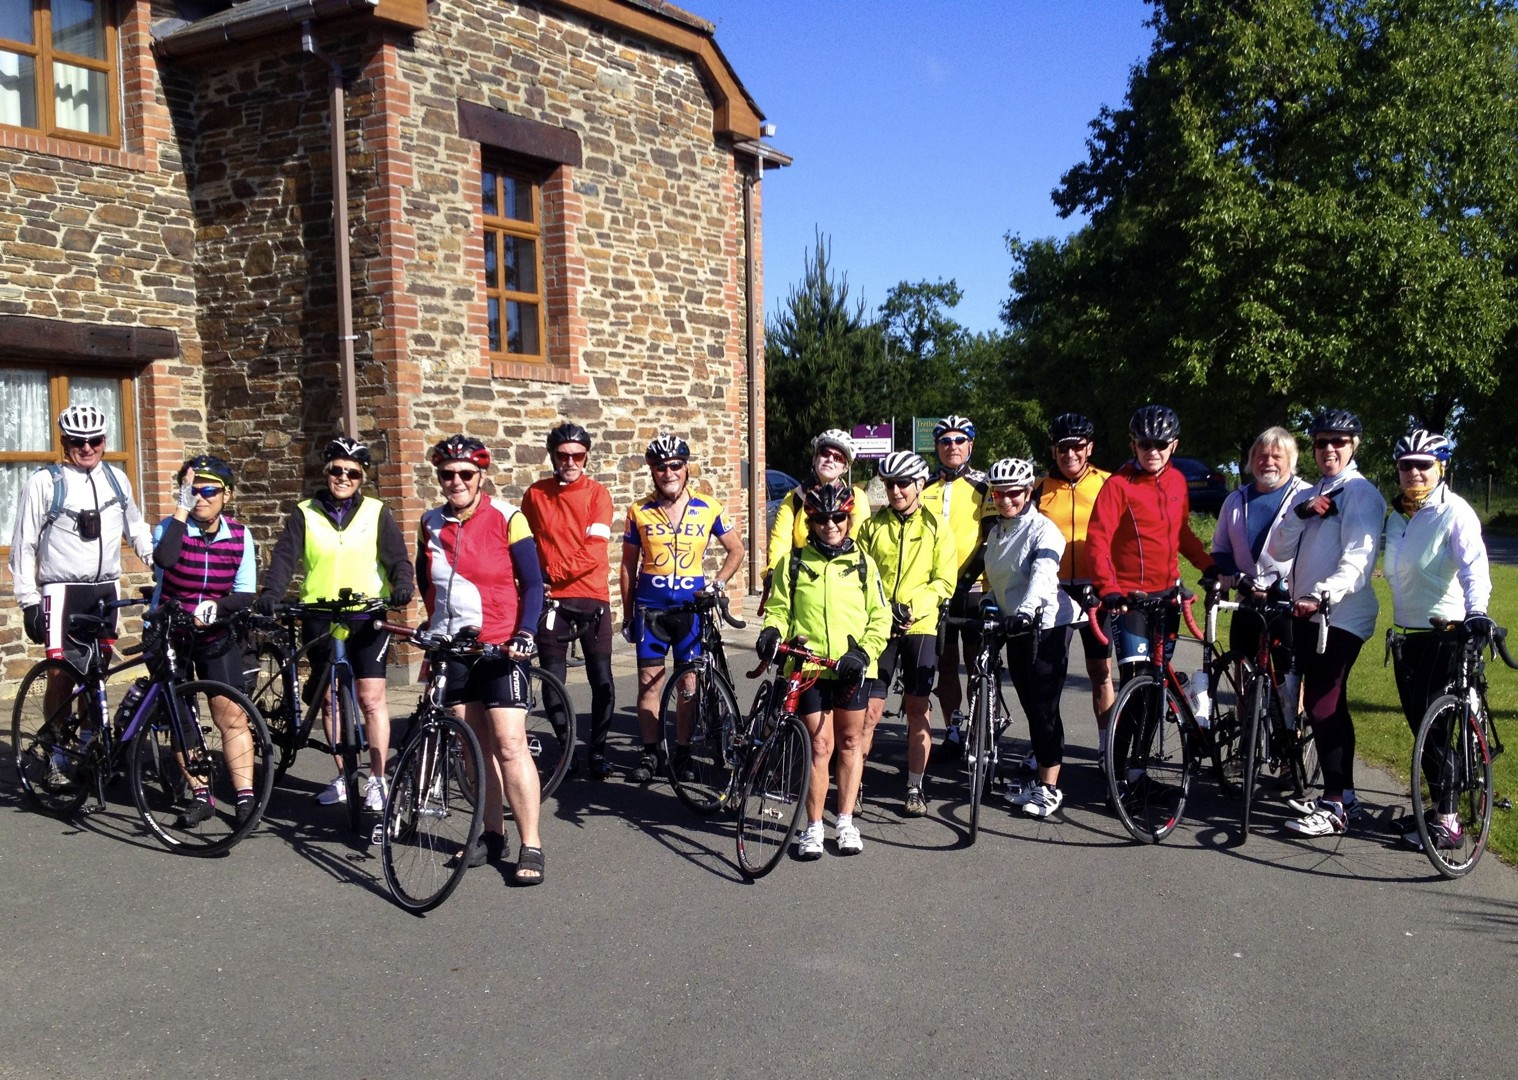 LEJOG8.jpg - UK - Land's End to John O'Groats Explorer (22 days) - Guided Cycling Holiday - Road Cycling